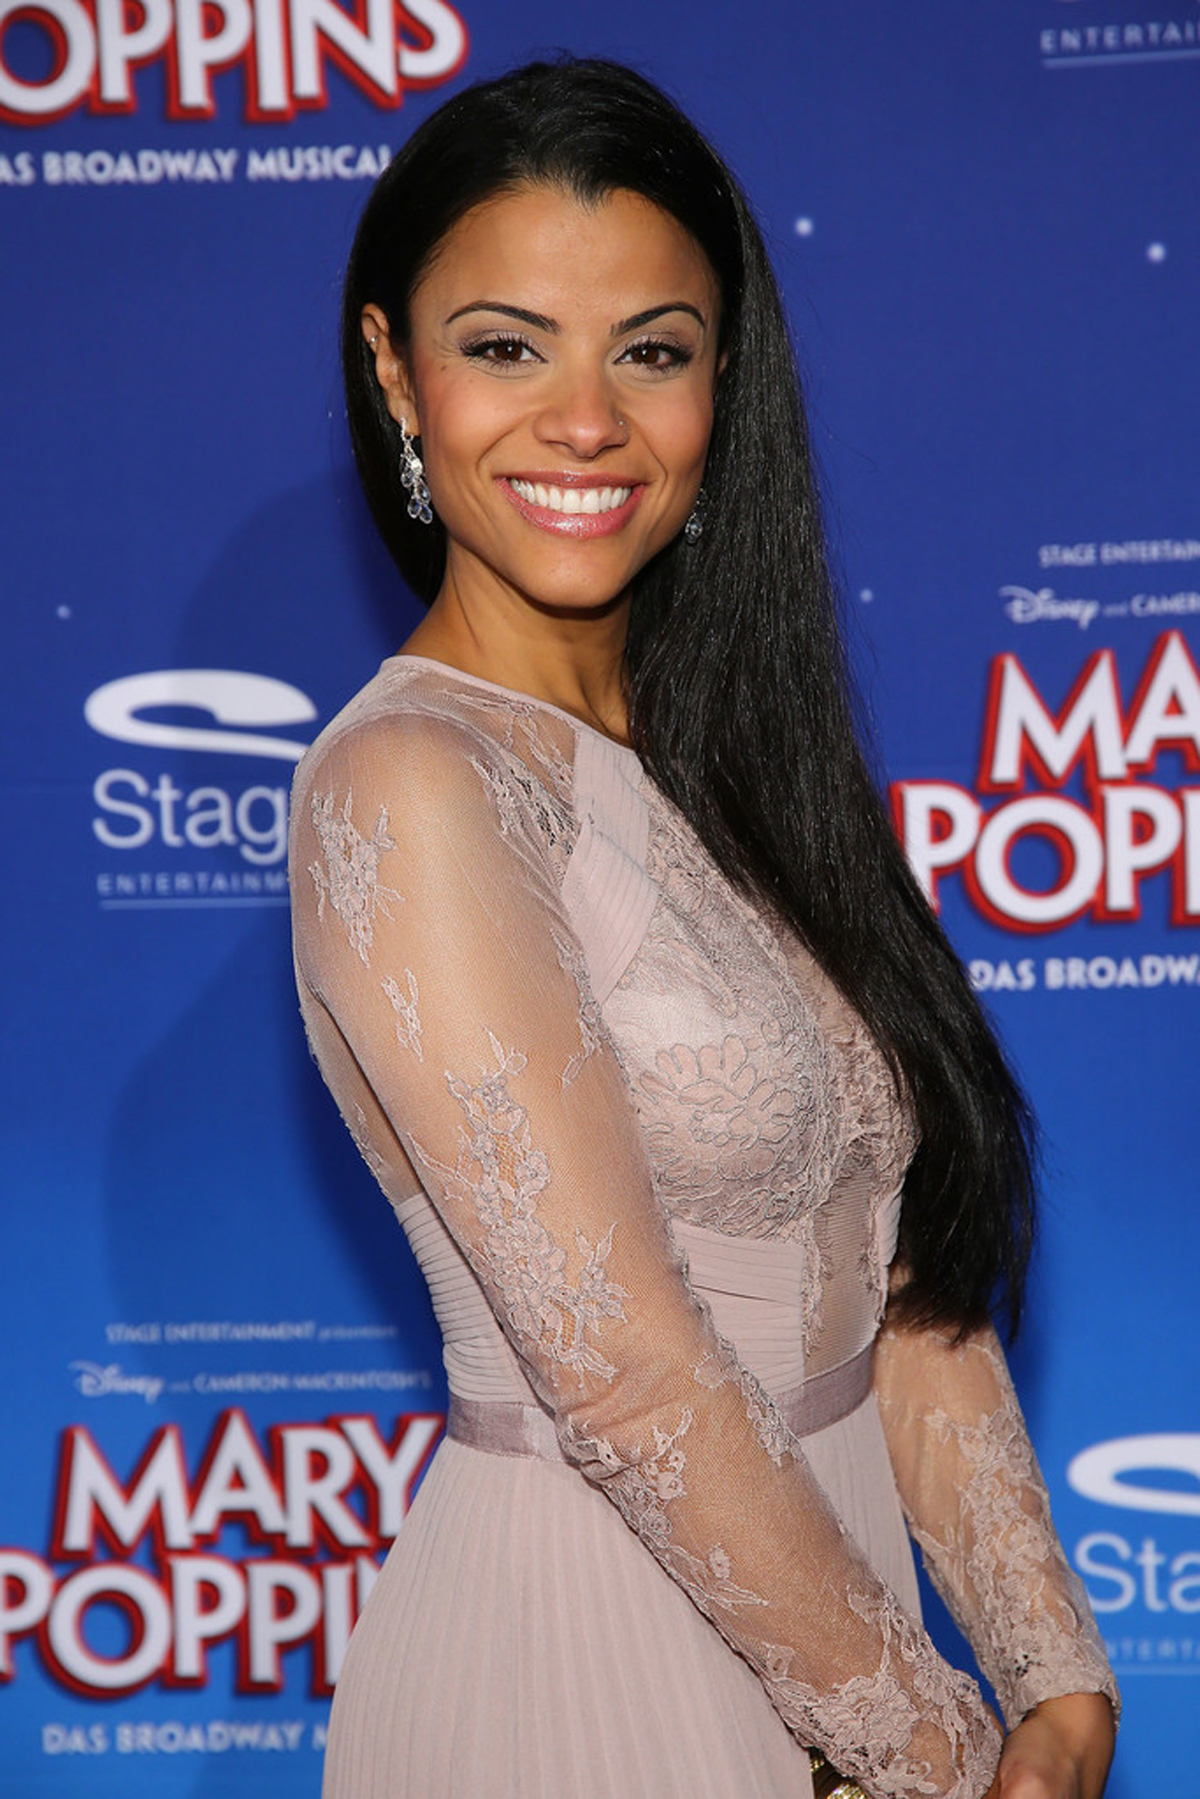 Myrthes Monteiro - Opening night Marry Poppins